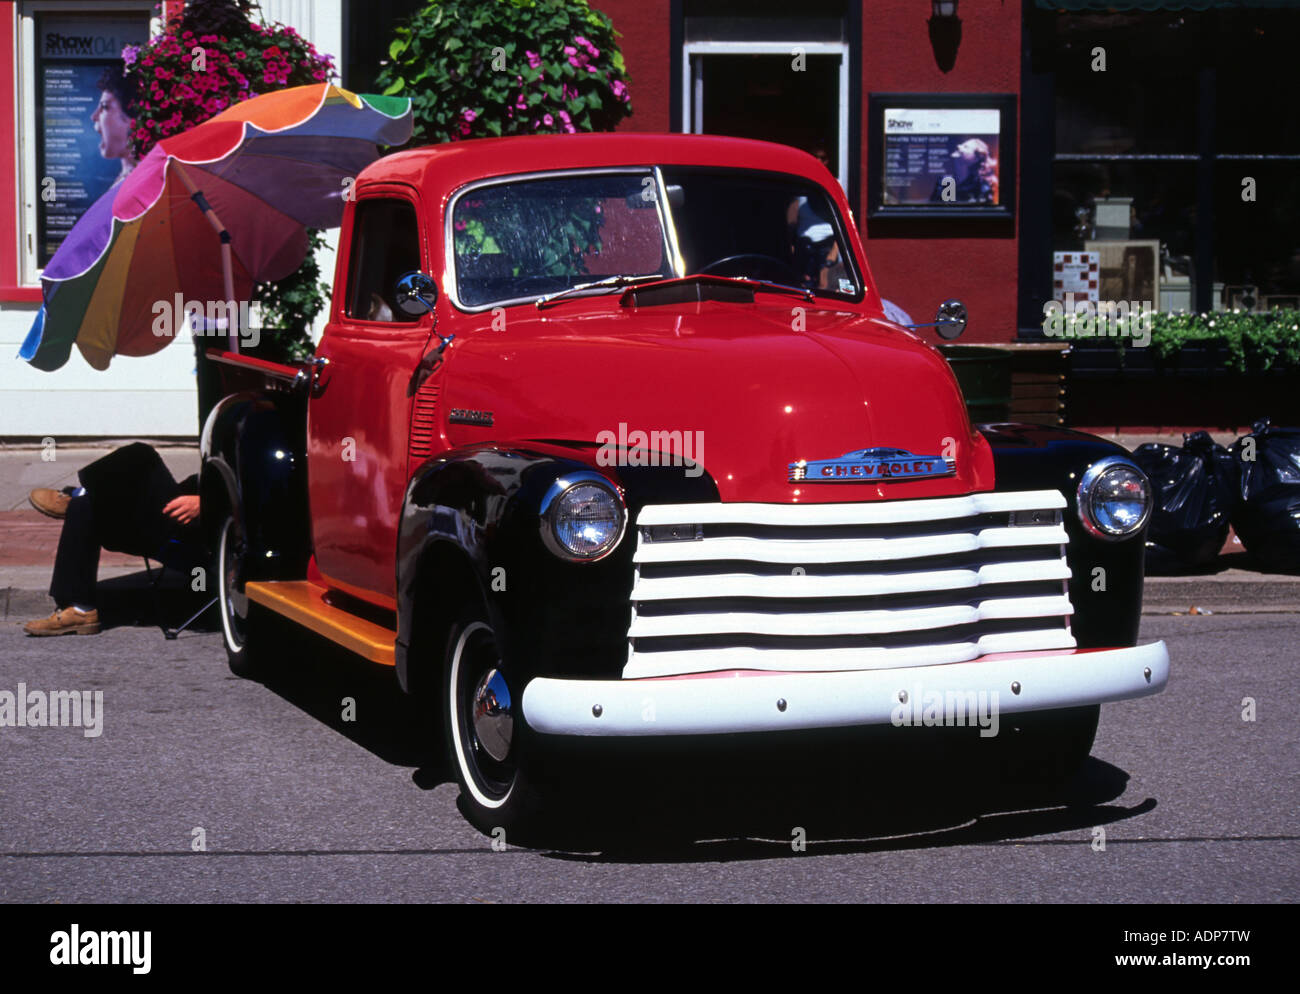 An Old Shiny Red And Black Chevrolet Truck With A Brightly Coloured